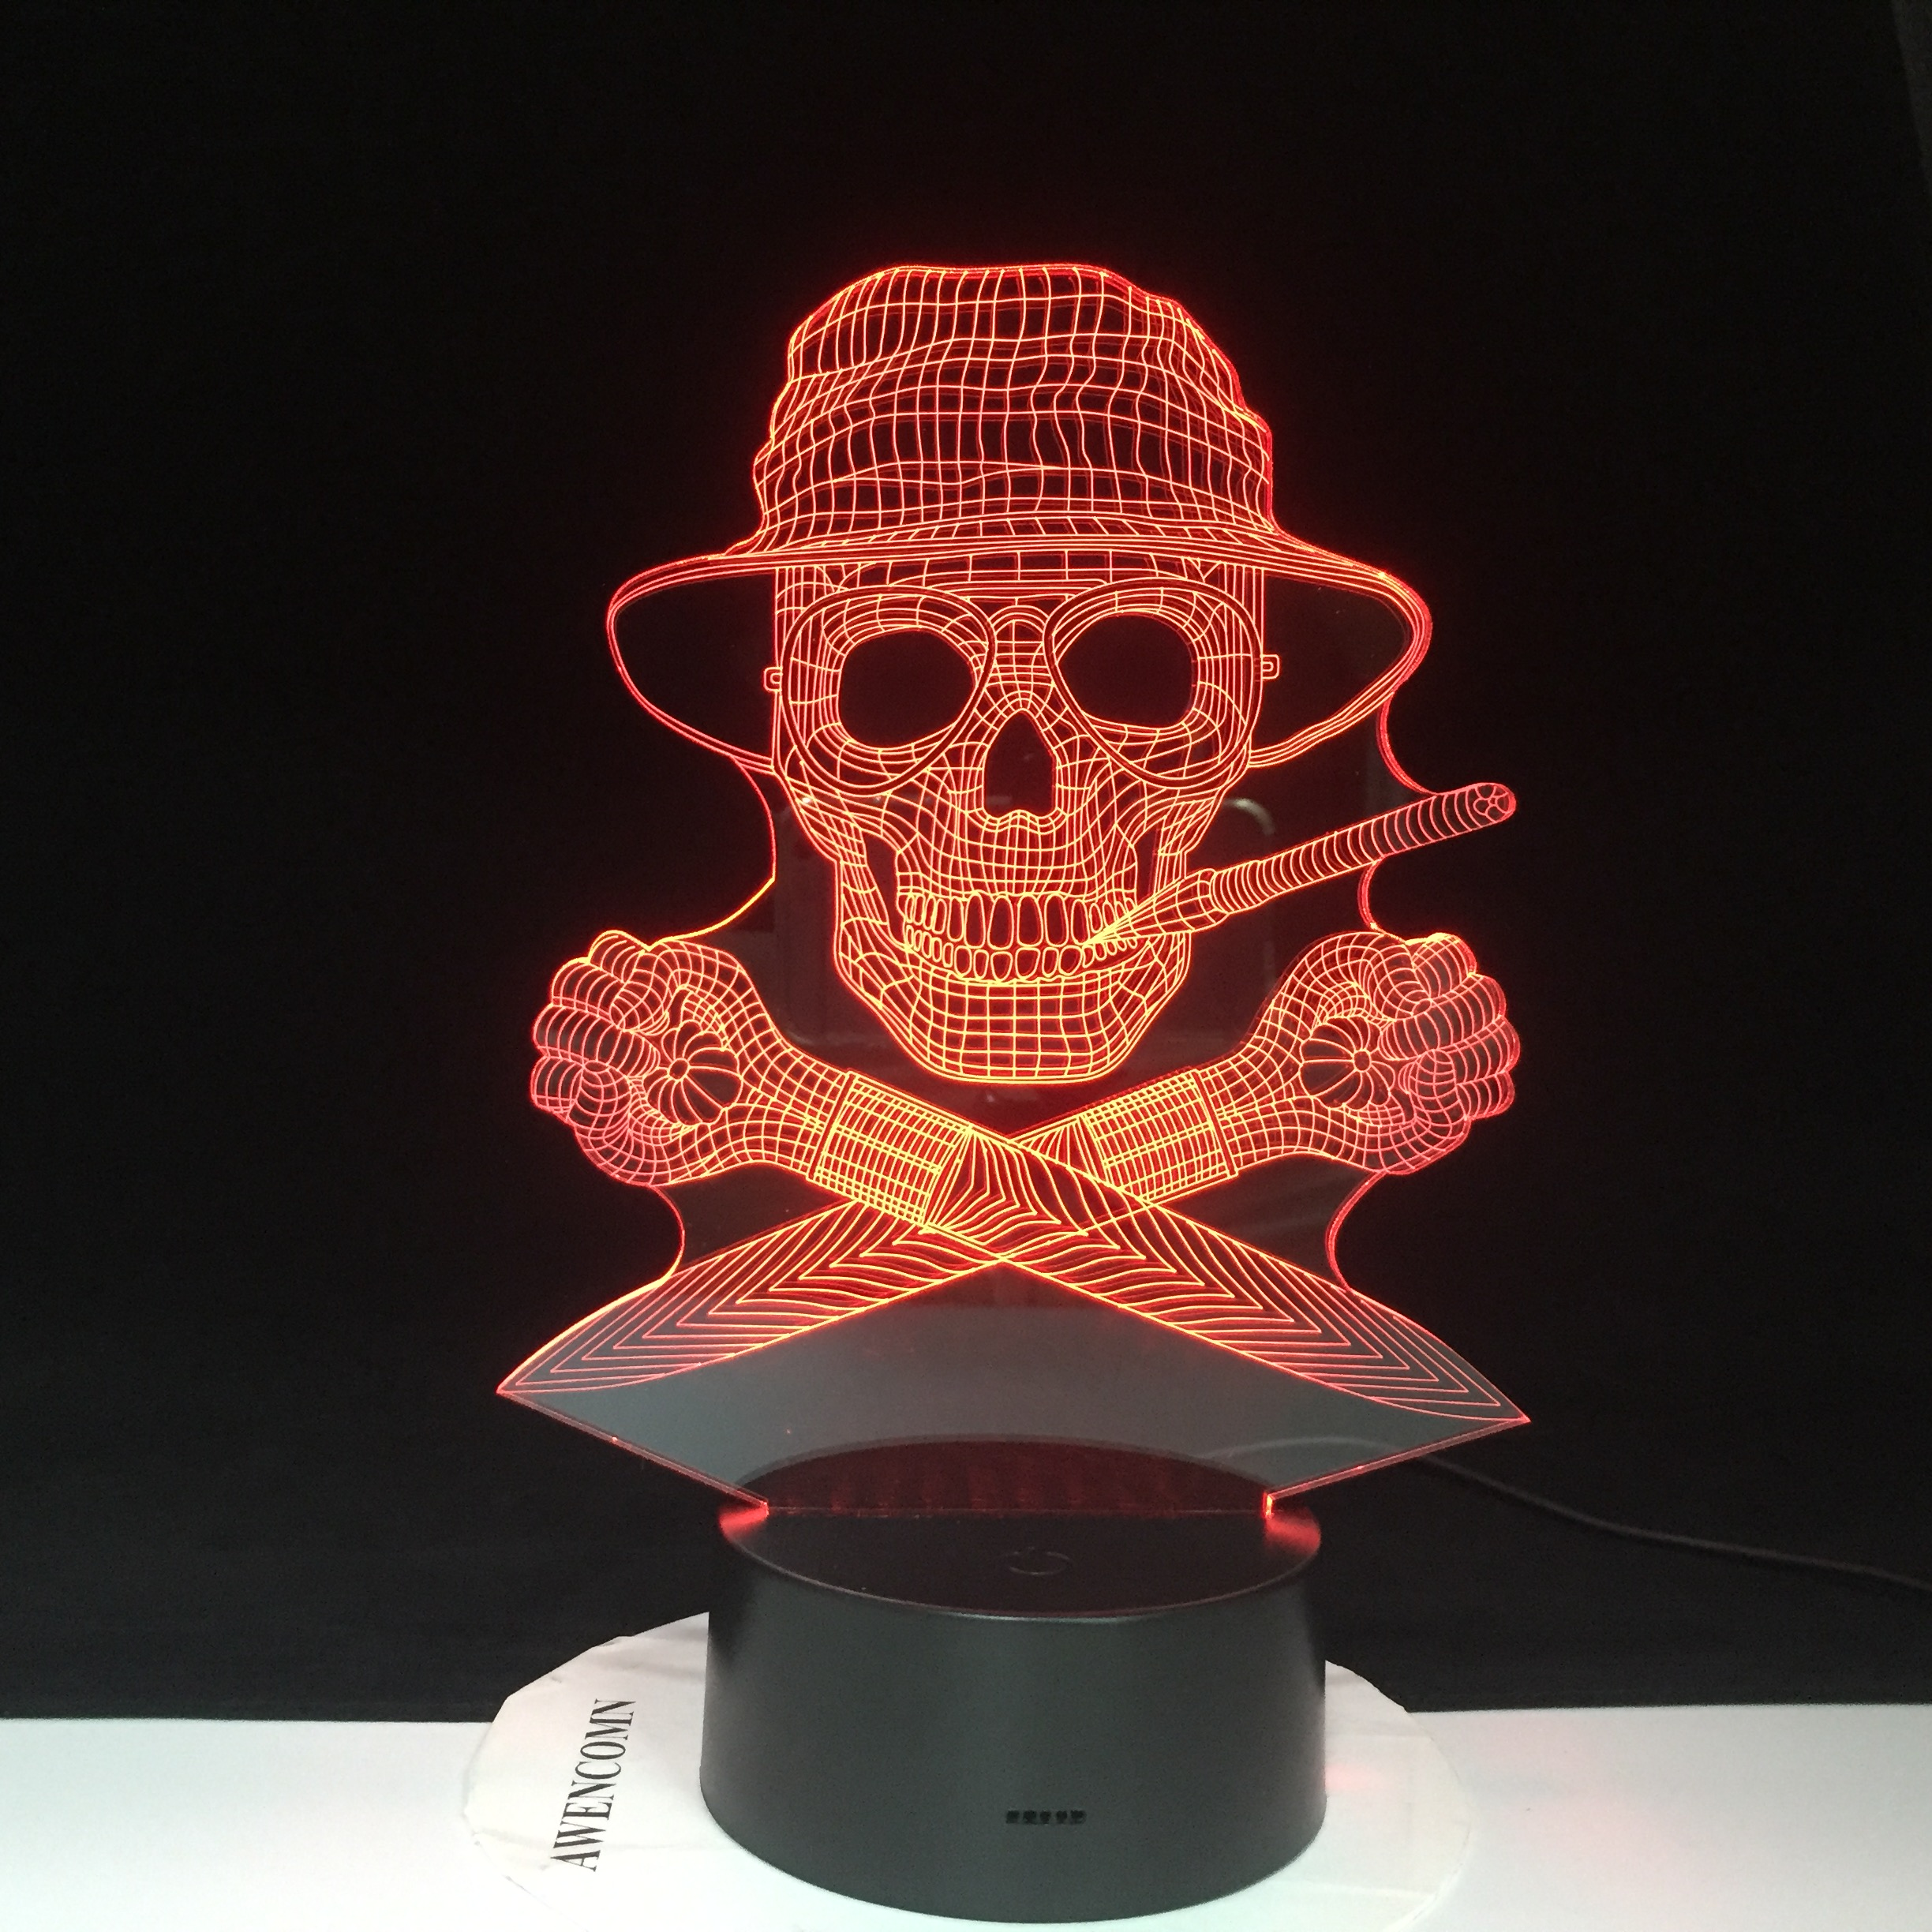 The Skeleton Pirate 3D Lamp LED USB Creative Skull 3d Night Light 7 Color Change Acrylic Remote Touch Switch Desk Lamp 3390